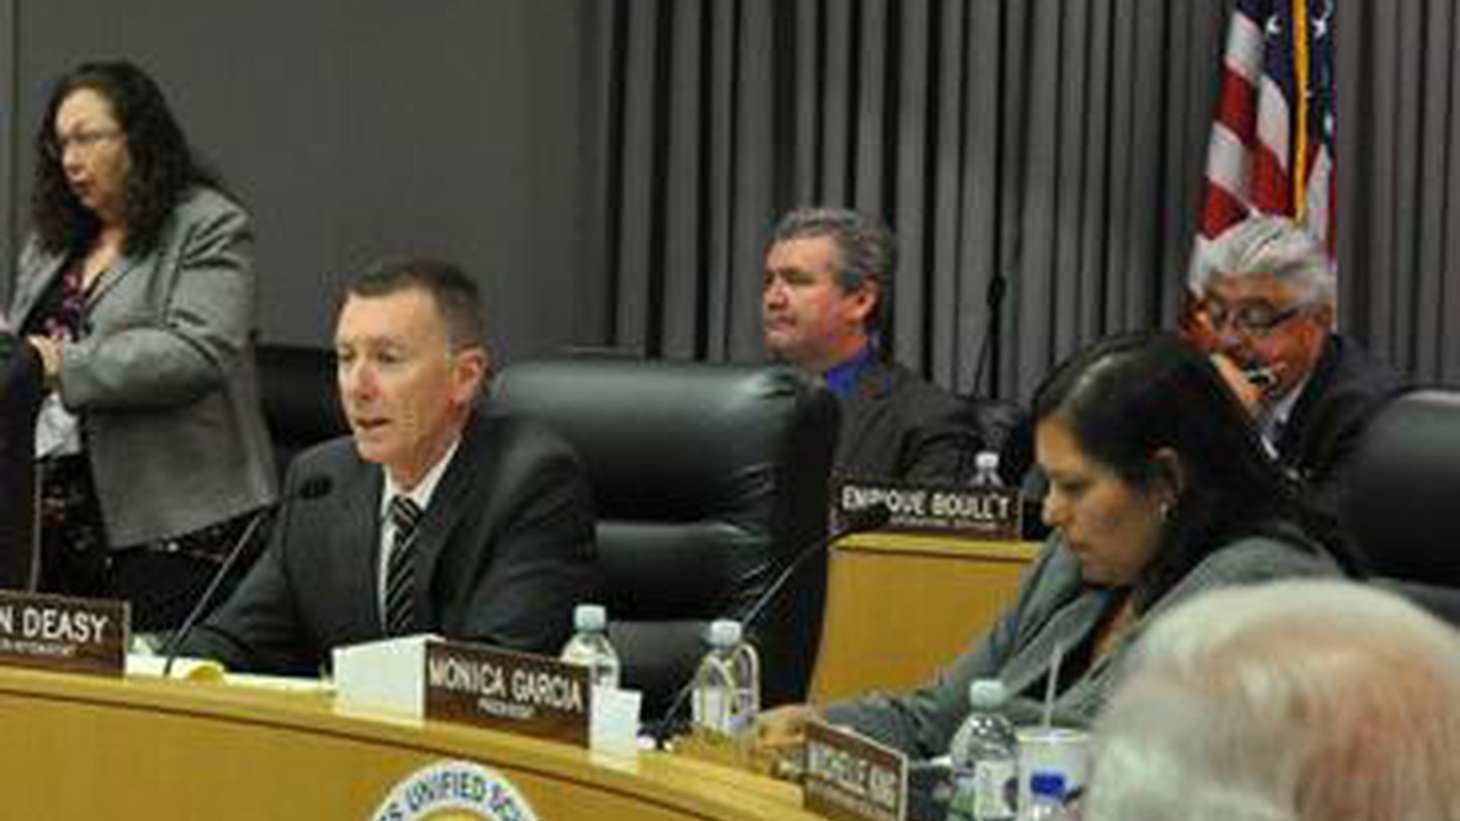 """After much uncertainty, Superintendent John Deasy got a """"satisfactory"""" rating from the LAUSD School Board. He'll stay on until 2016. Can they really work together?"""